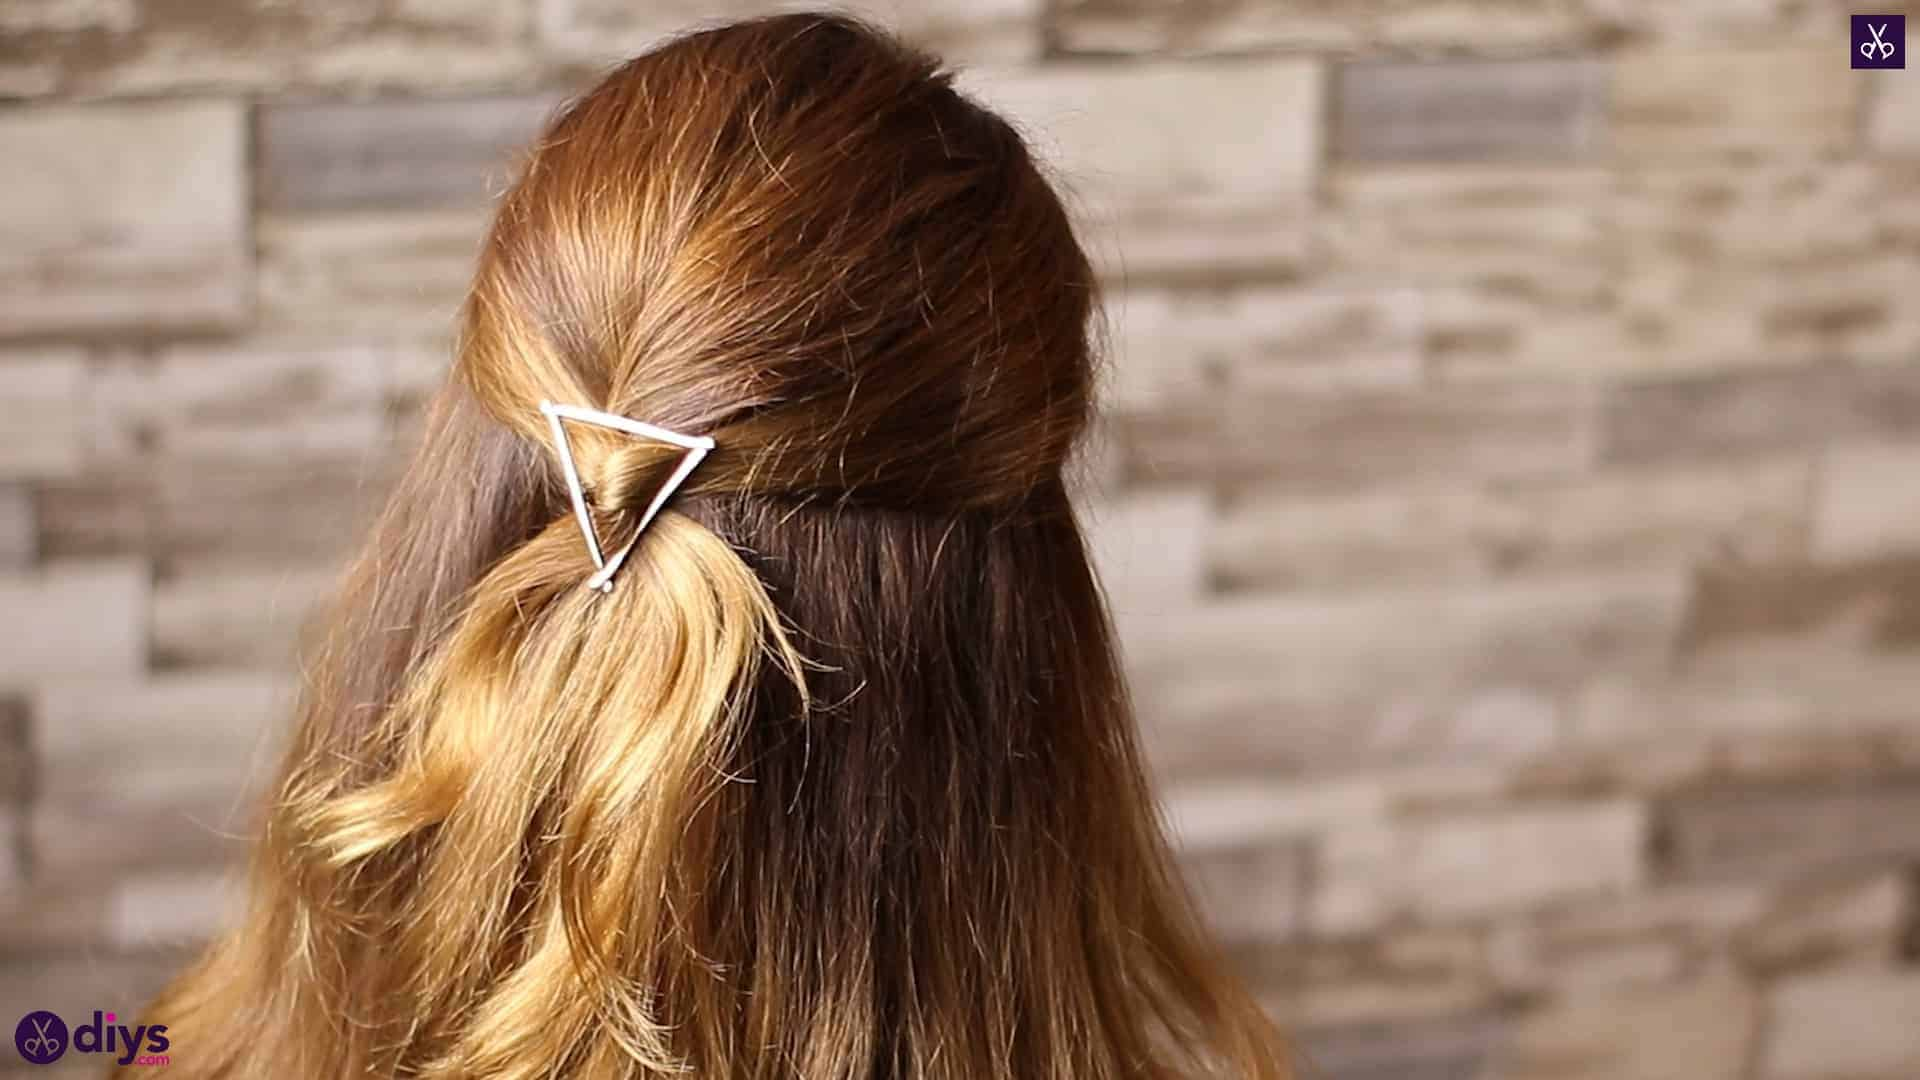 Updo hairstyle for wavy hair